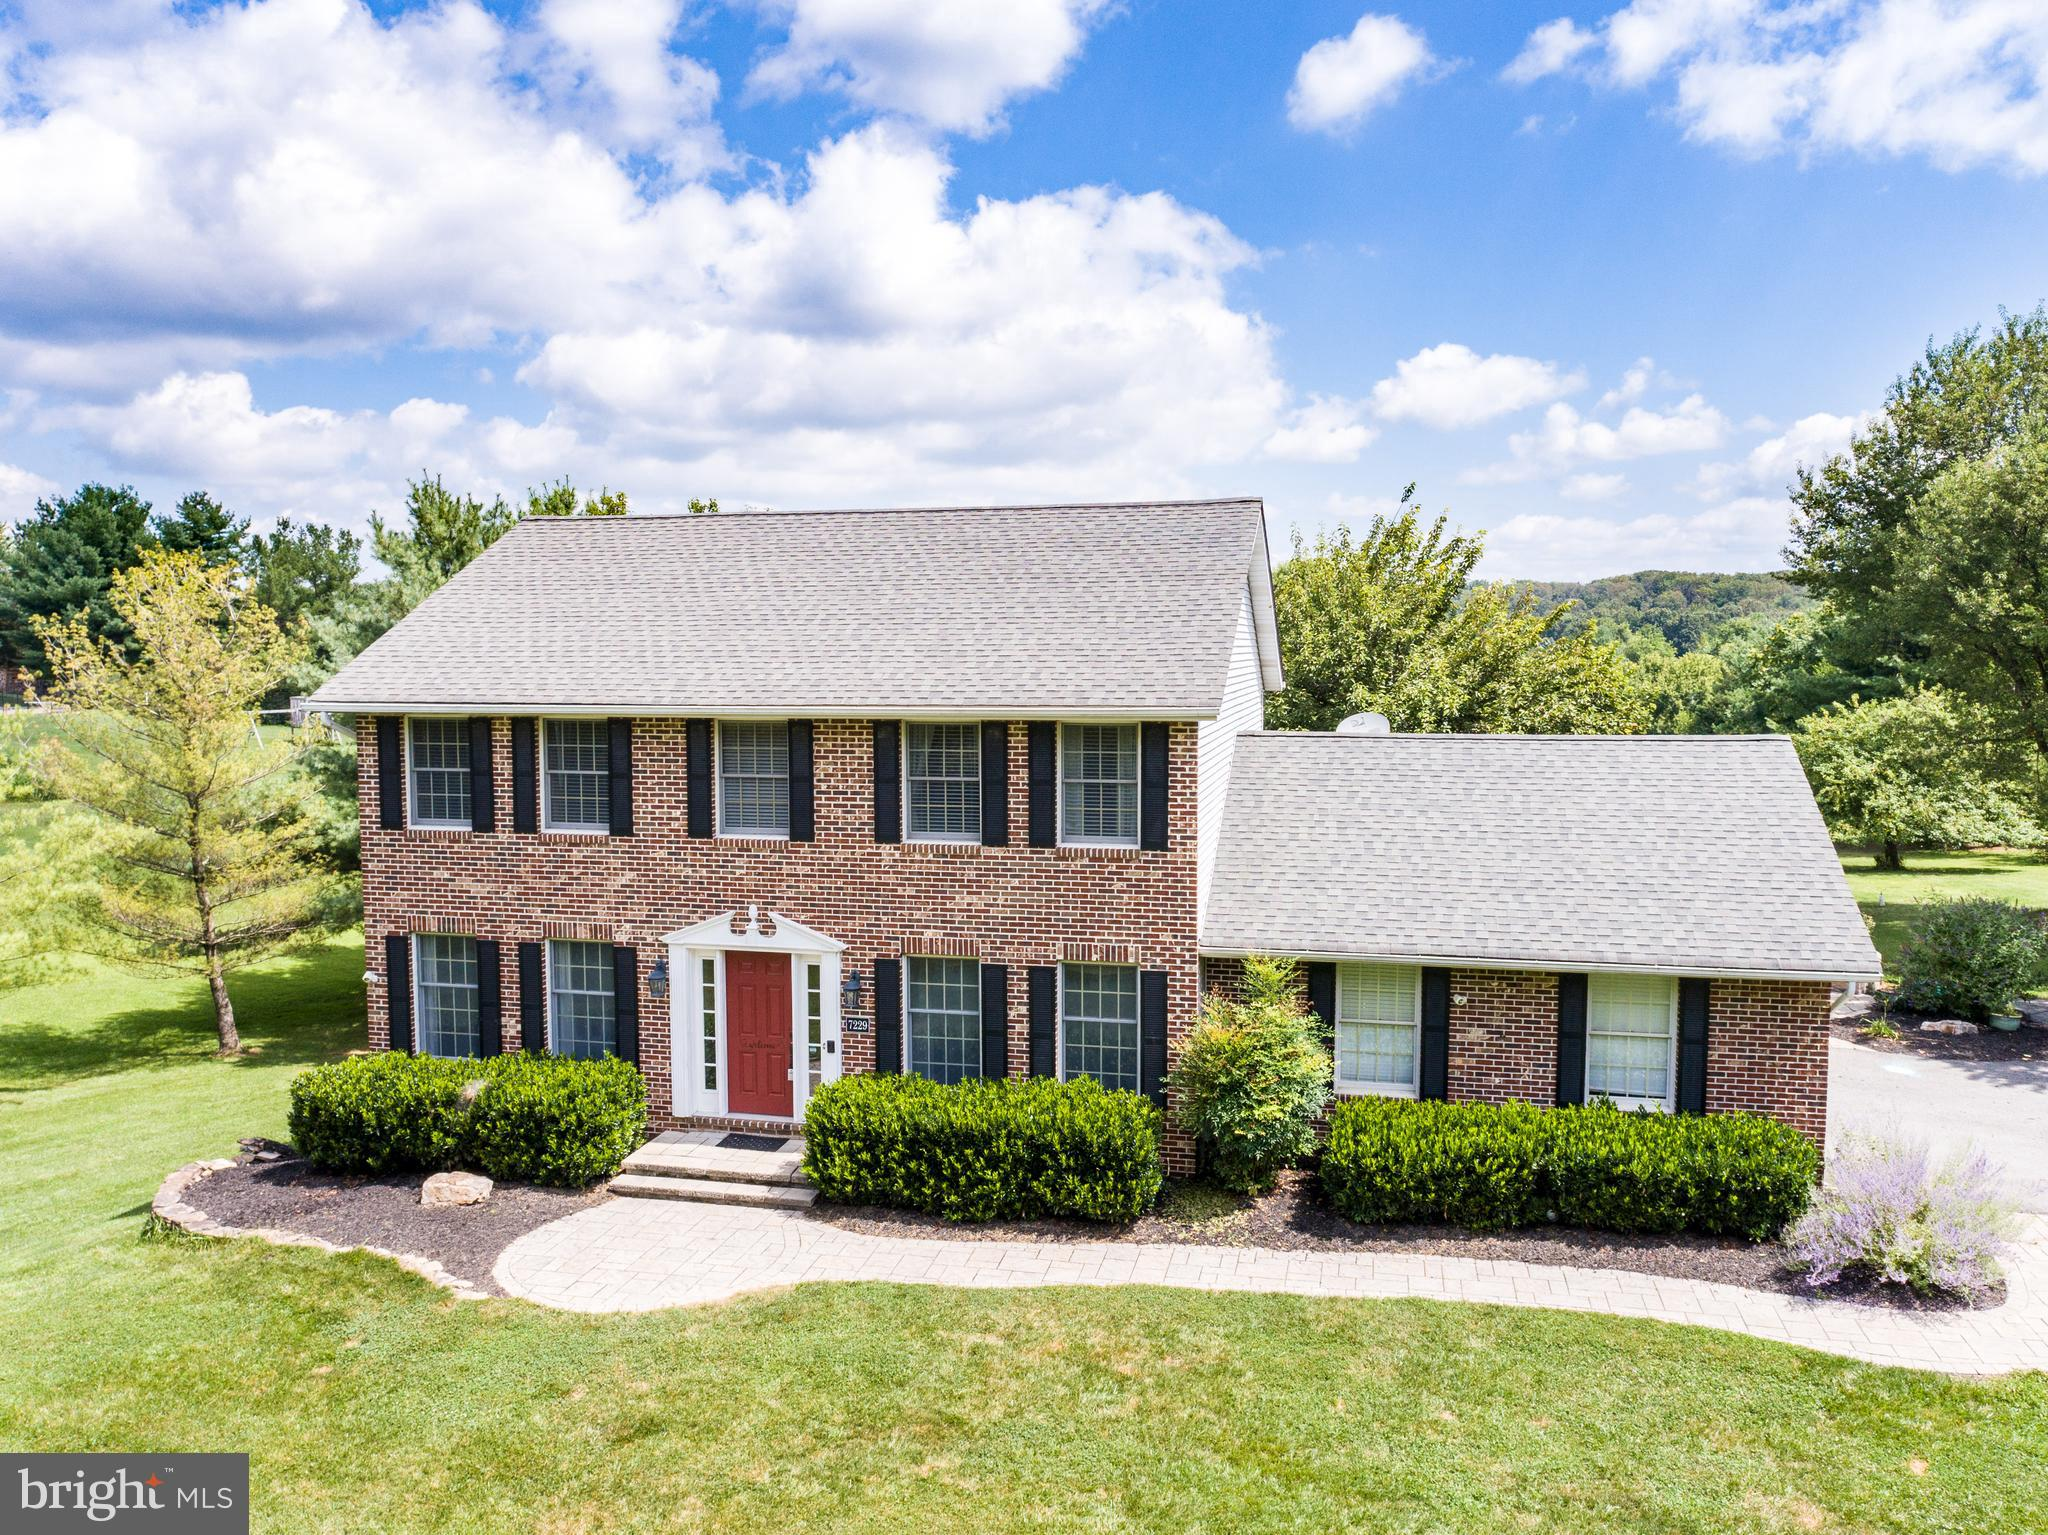 Welcome home! This 4 bedroom brick front colonial is sure to please your pickiest buyers! Bright & s